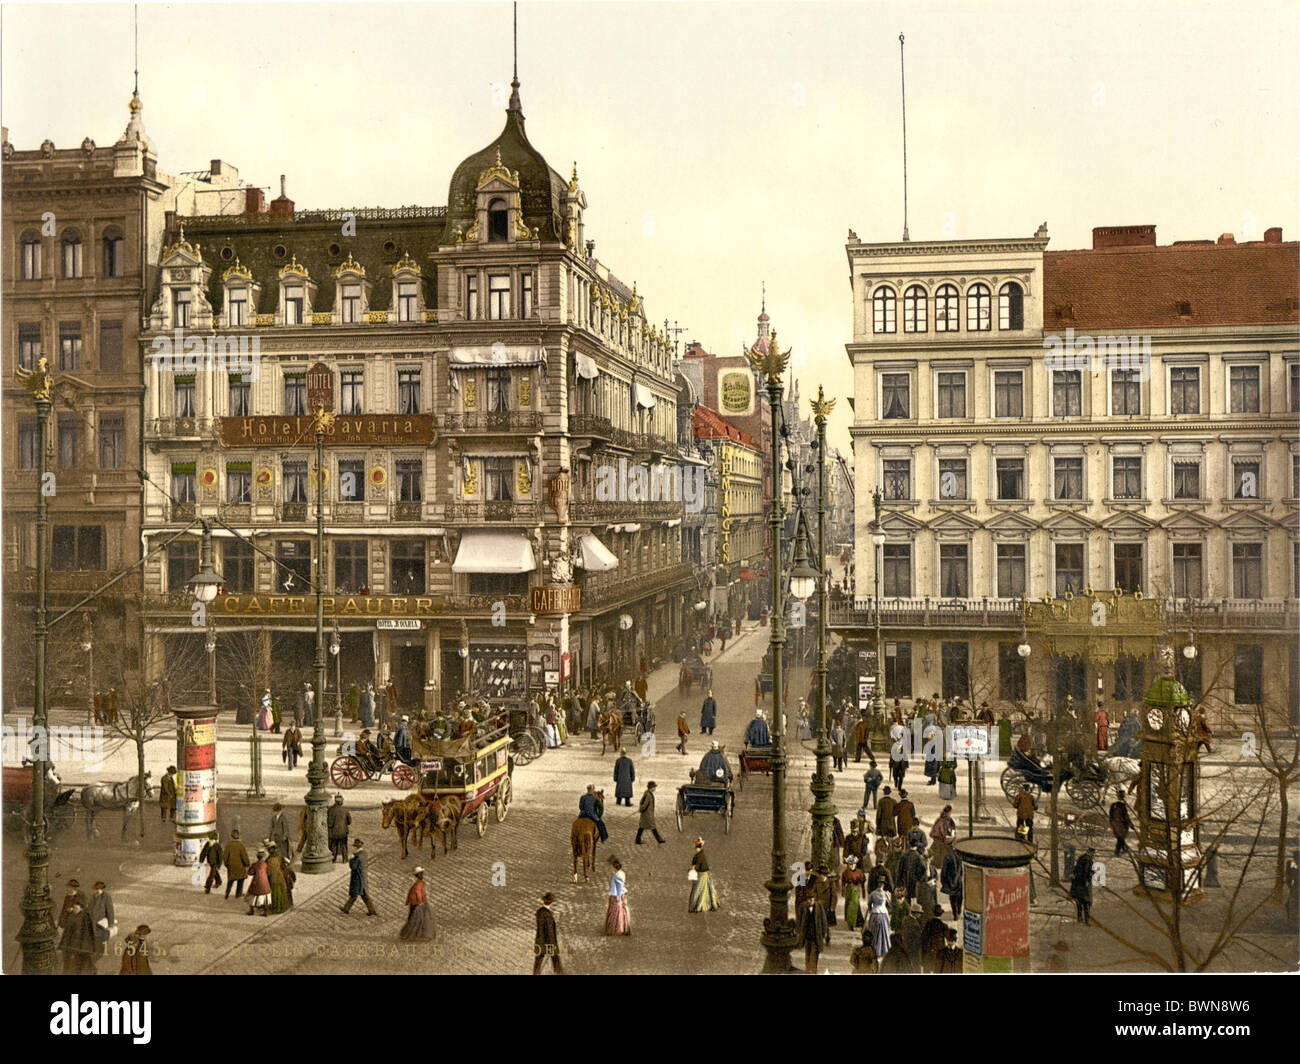 Cafe Bauer Unter den Linden Berlin Germany Europe Photochrom about 1900 German Empire history historical his - Stock Image